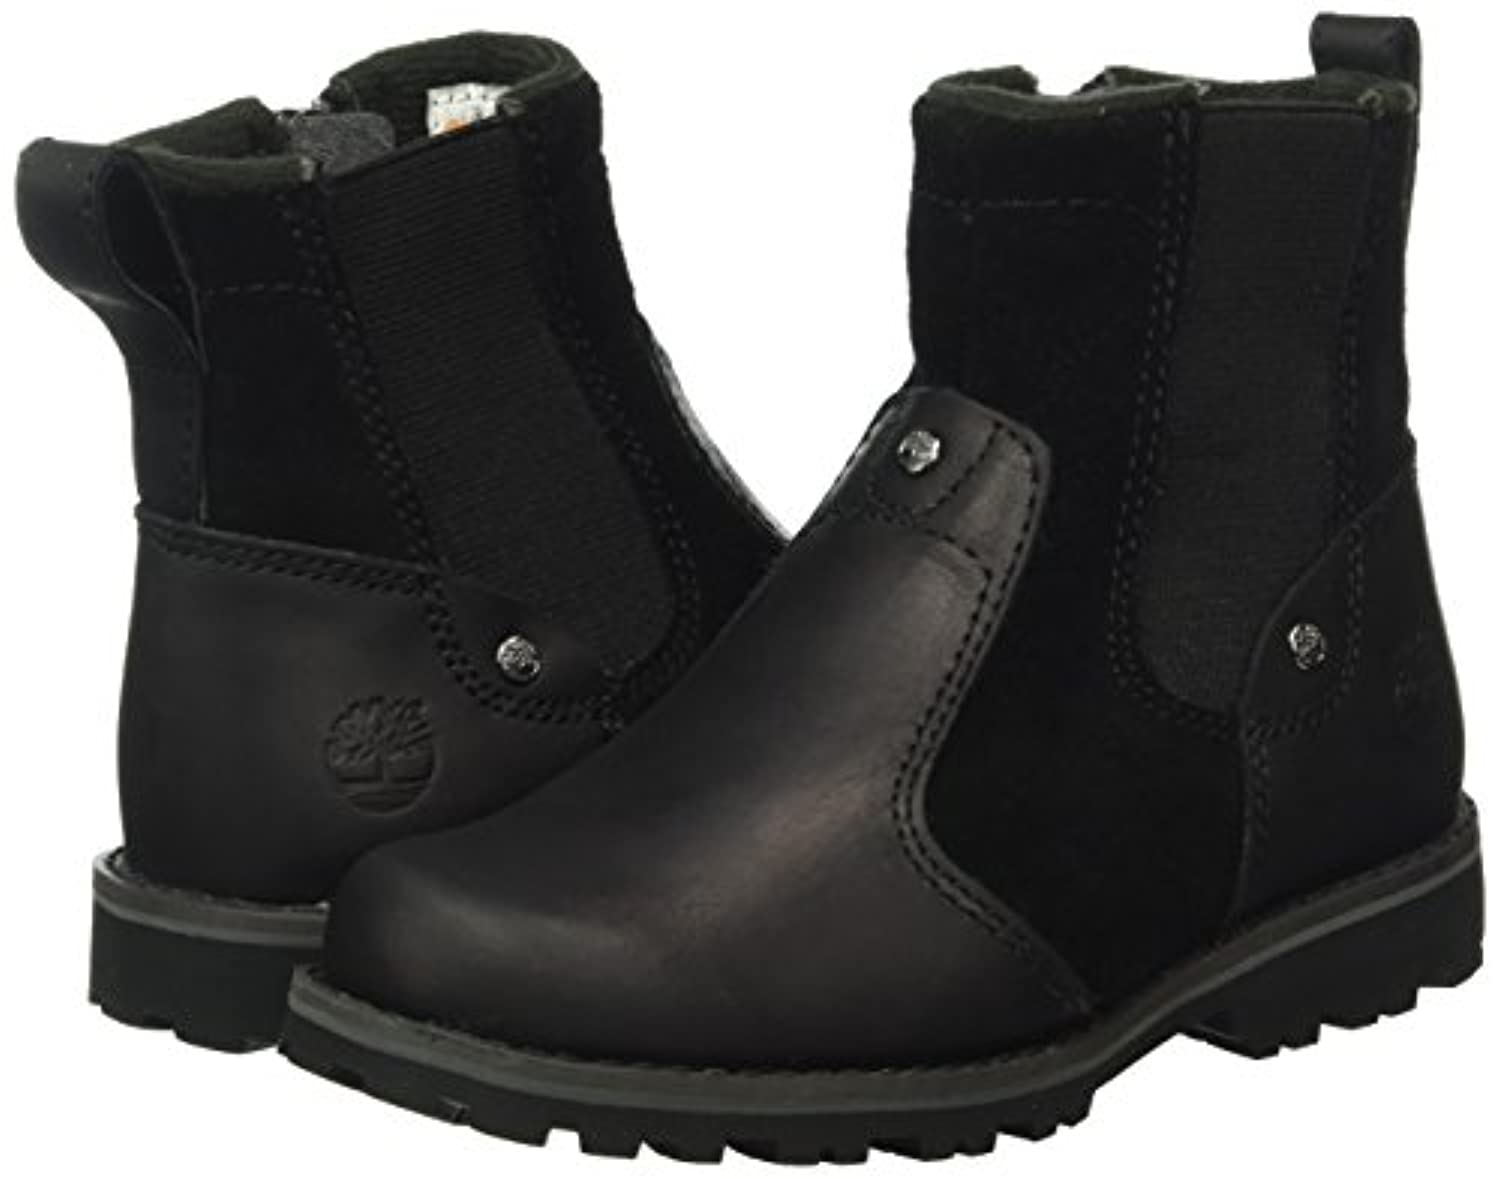 Timberland Asphalt Trail, Unisex Kids' Chelsea Boots, Black (Black Connection), 1 UK (33 EU)